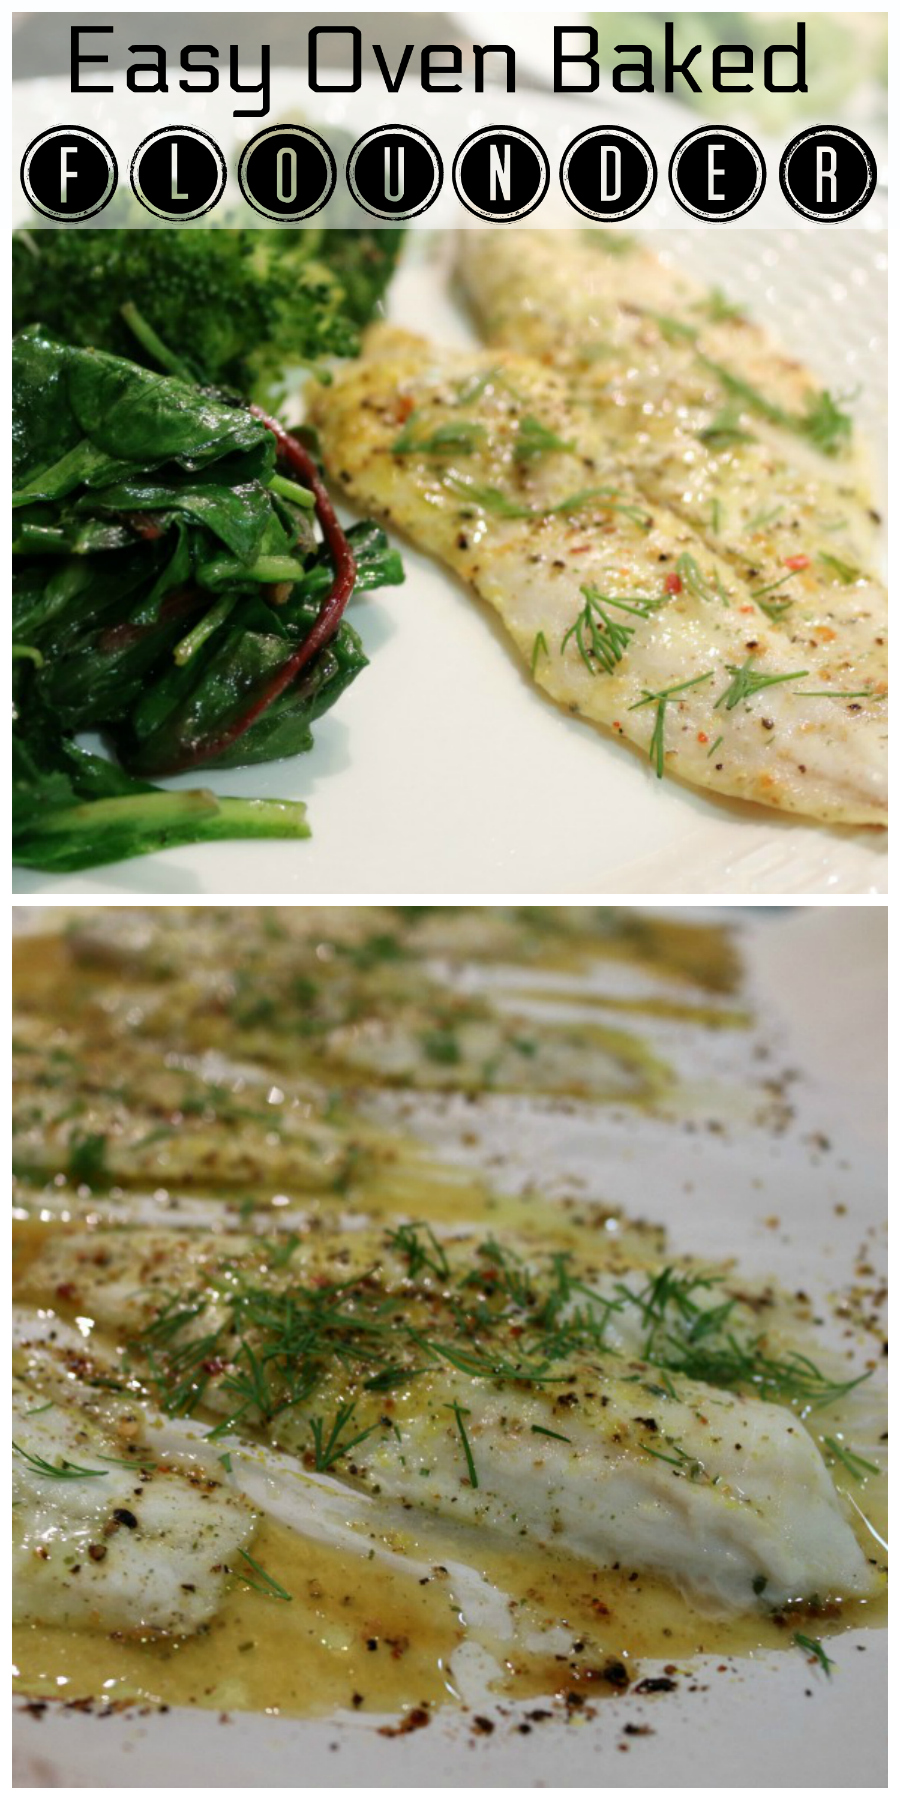 Easy Oven Baked Flouner CeceliasGoodStuff.com Good Food for Good People